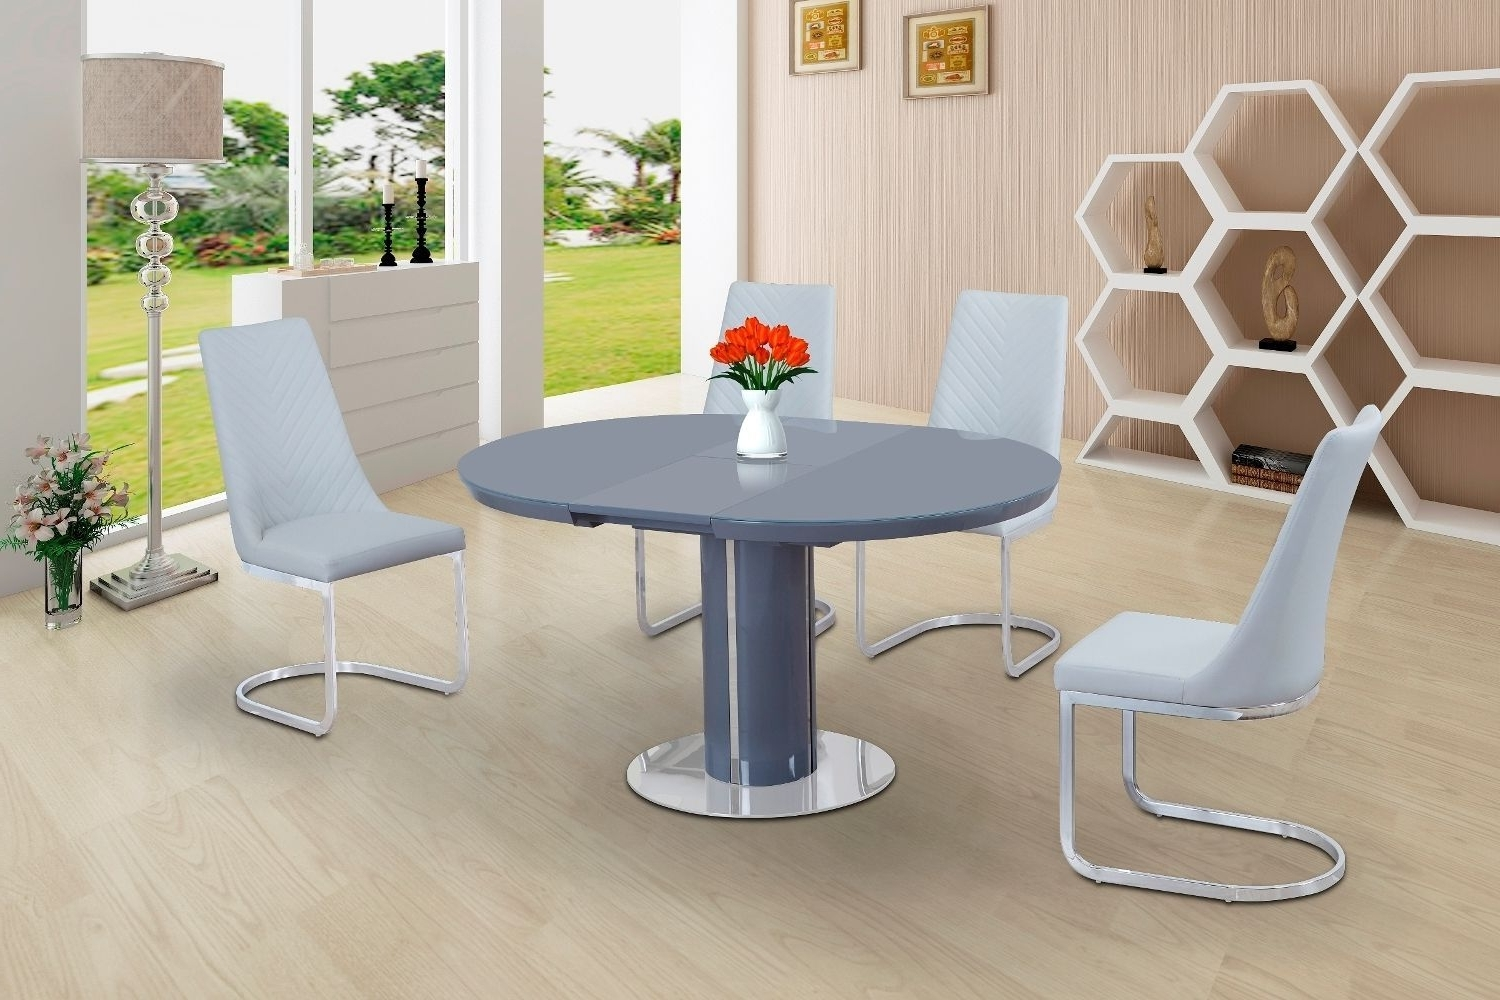 Newest Gloss Dining Tables Inside Eclipse Round Oval Gloss & Glass Extending 110 To 145 Cm Dining (Gallery 10 of 25)